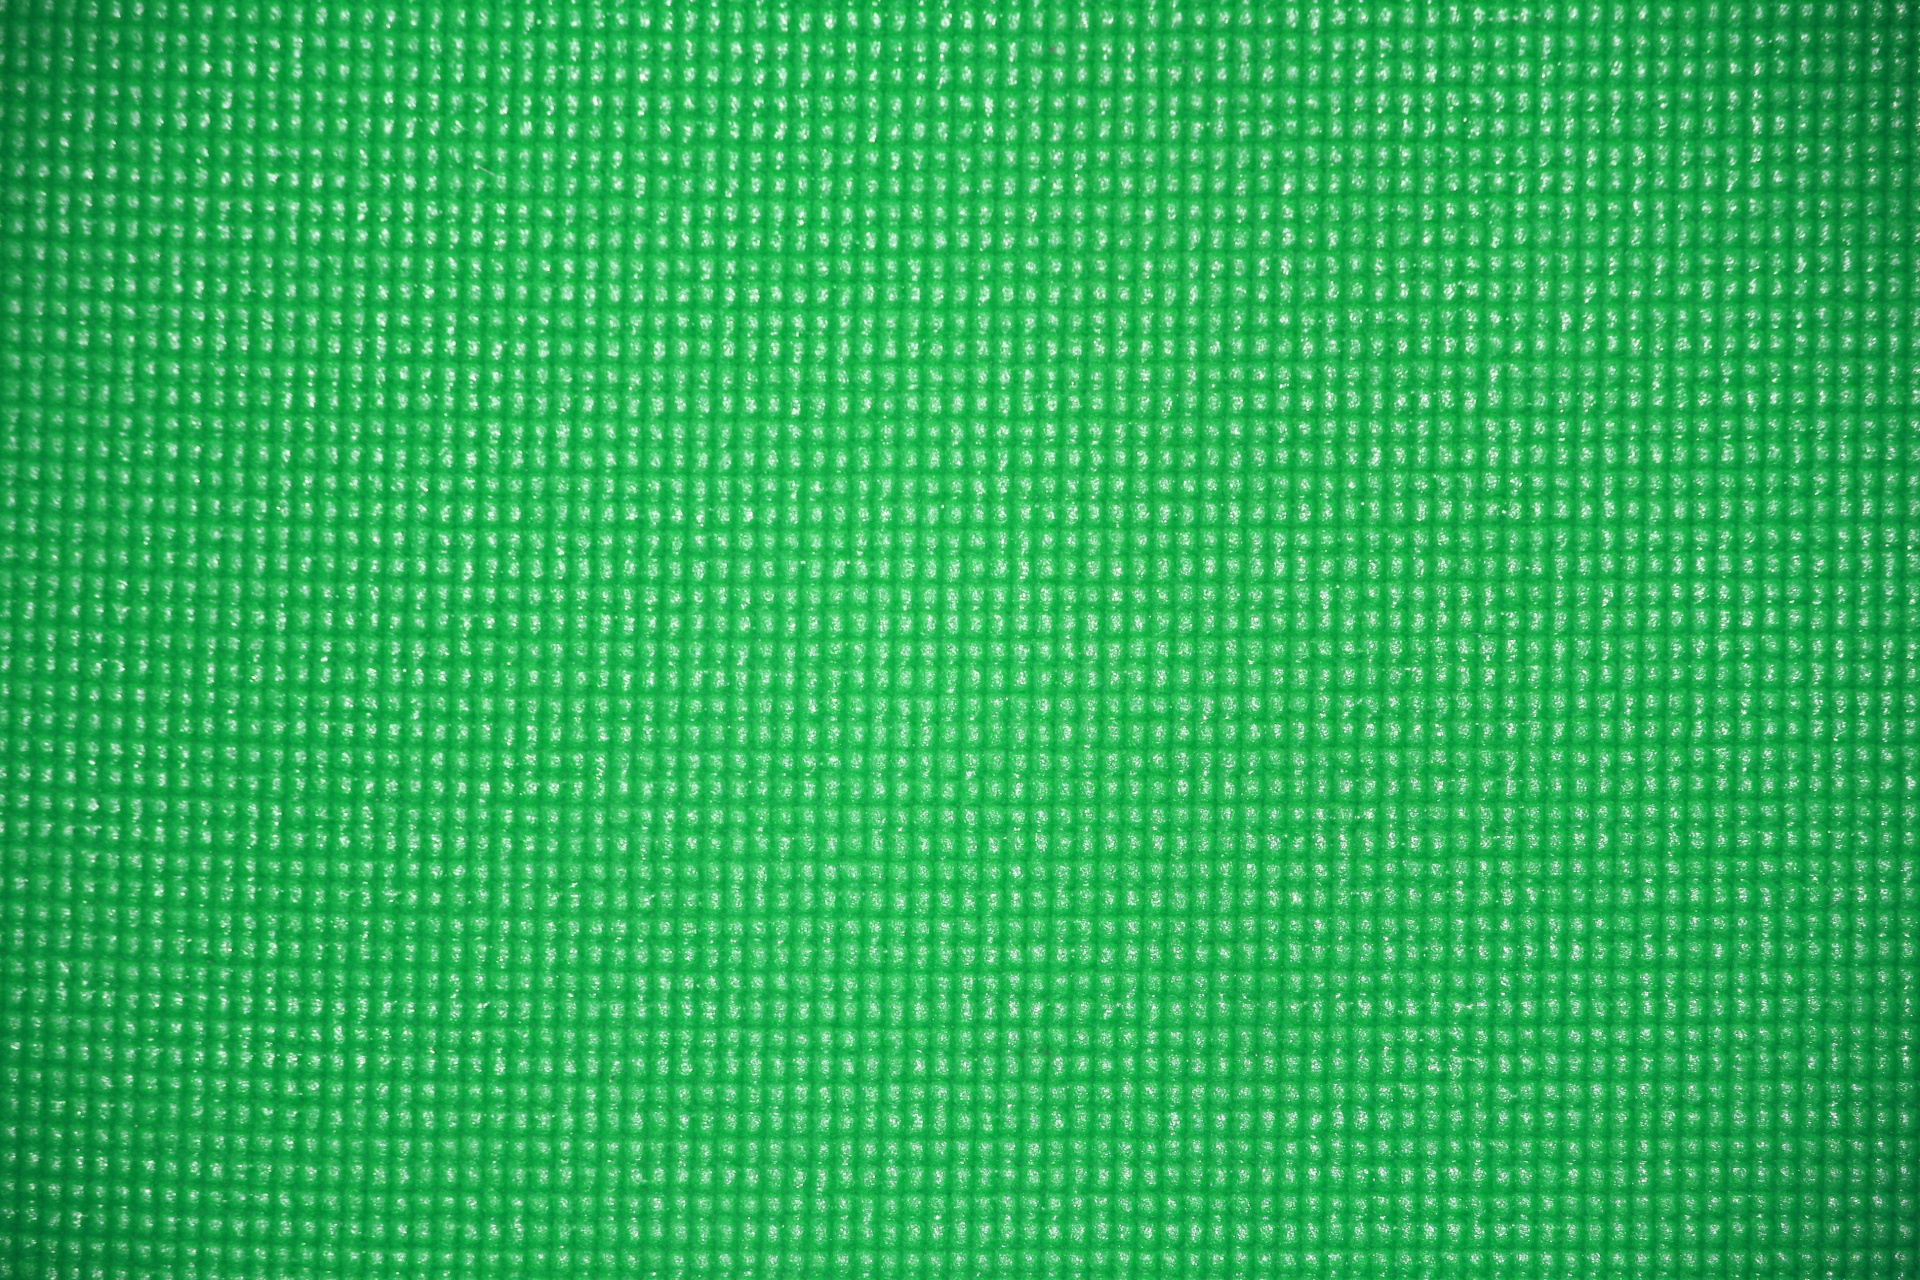 Green Background, Texture Free Stock Photo - Public Domain Pictures